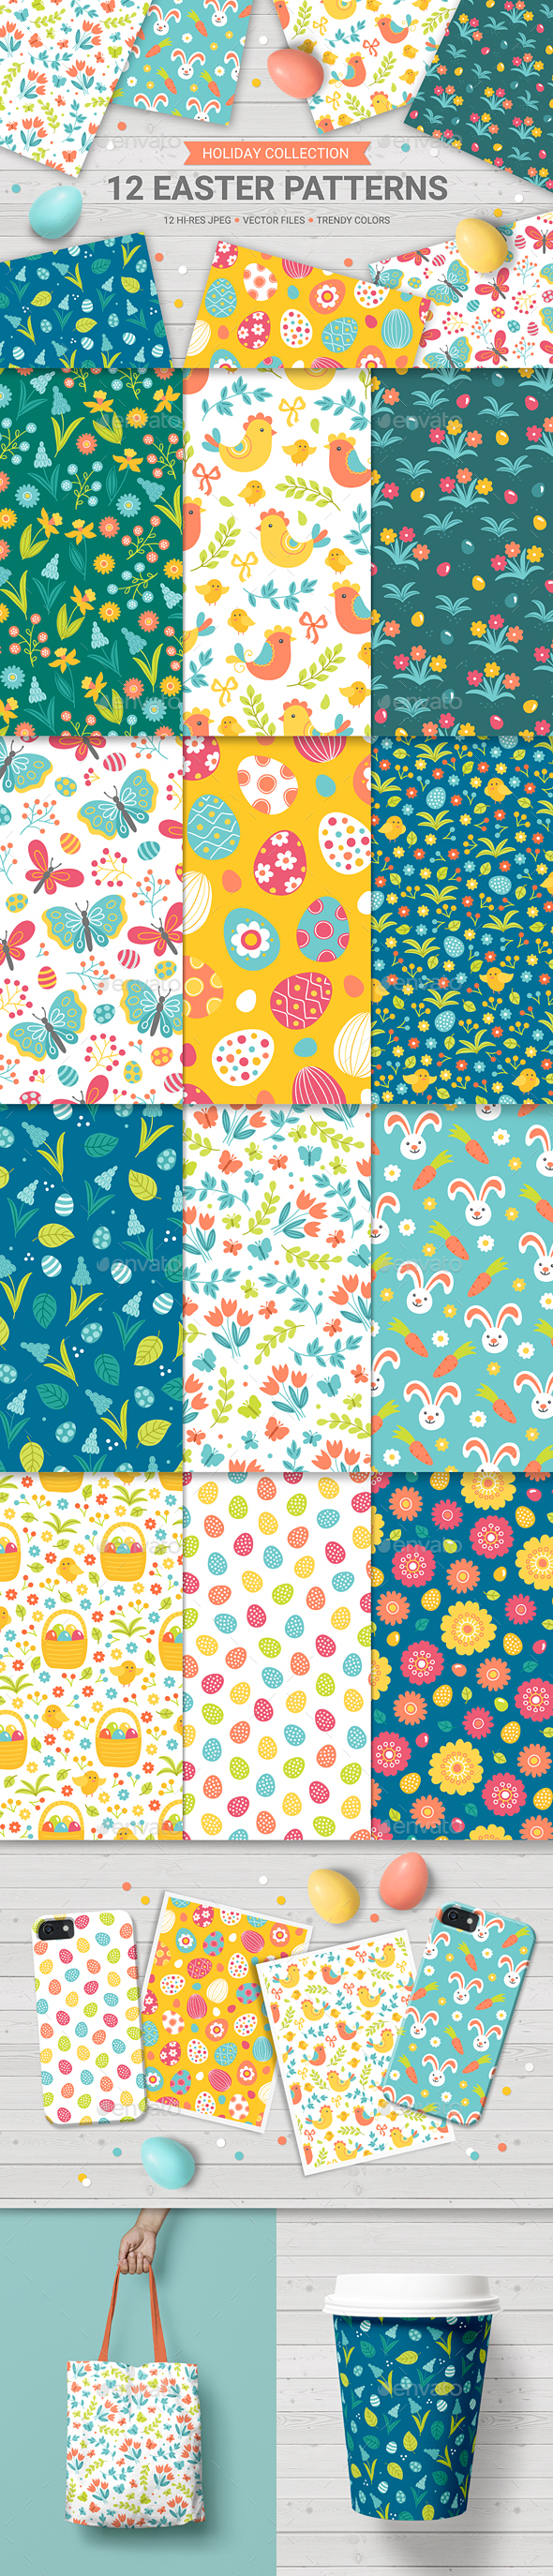 12 Easter Seamless Patterns - Miscellaneous Seasons/Holidays